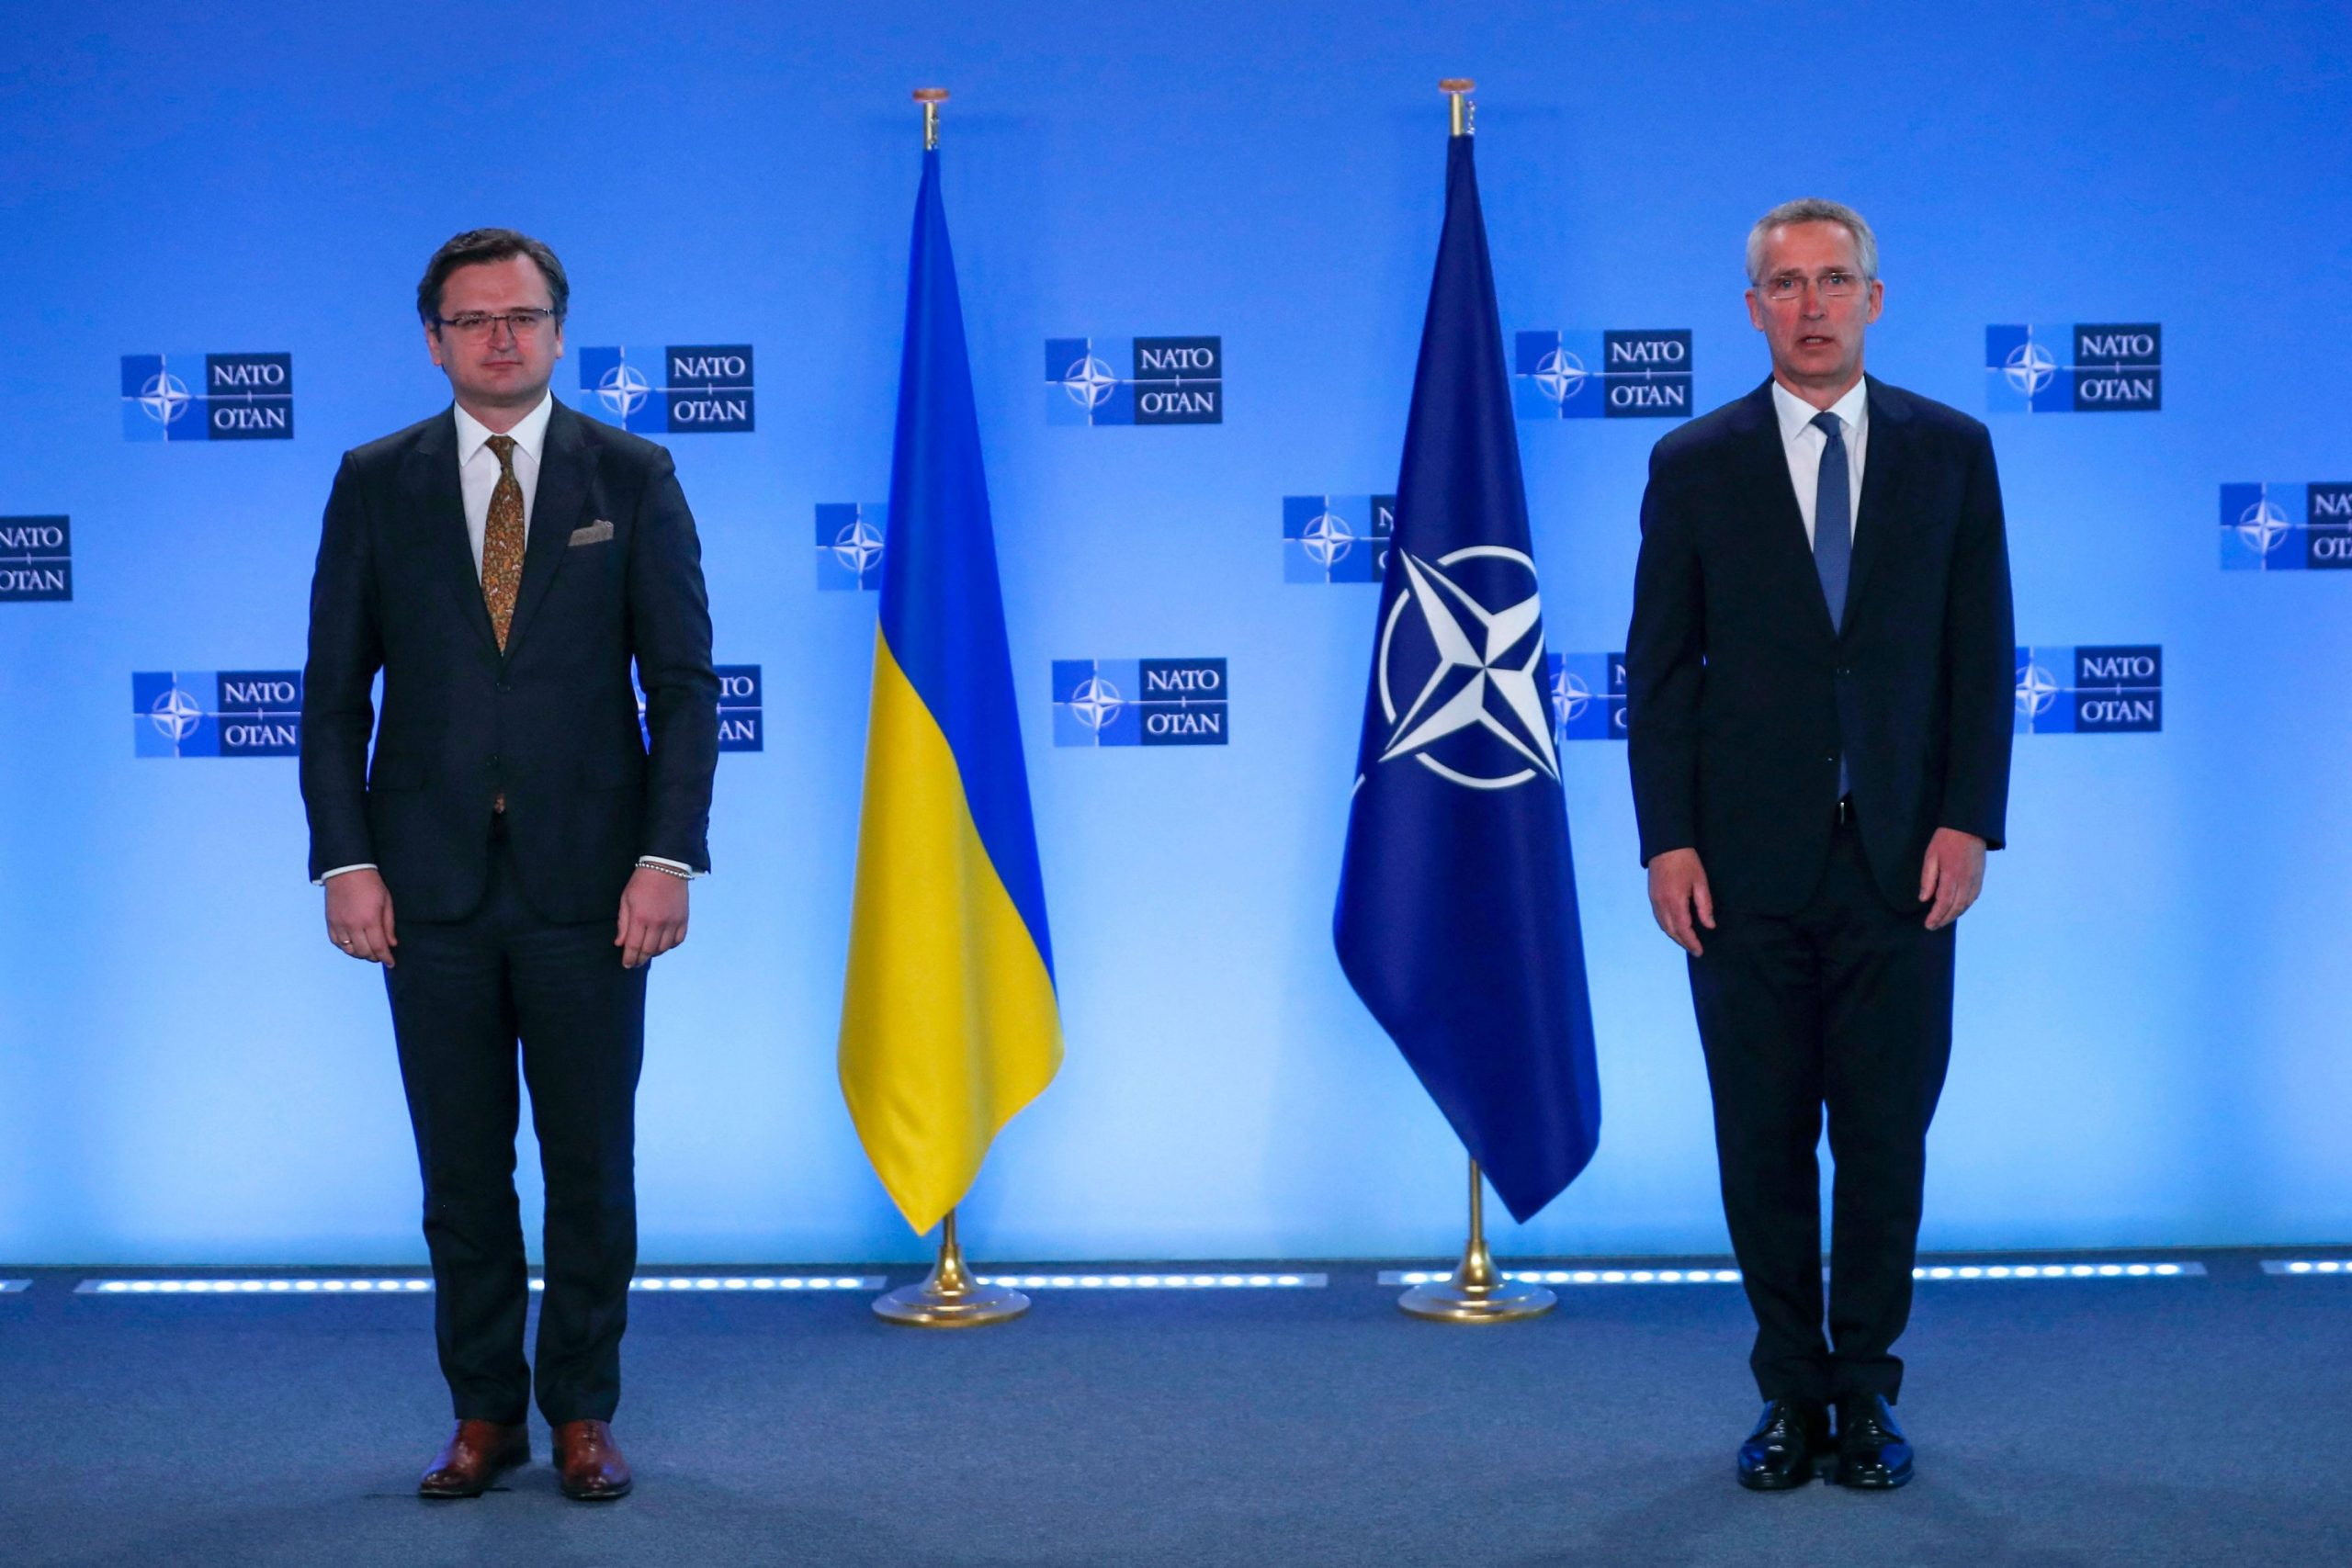 NATO's Stoltenberg calls on Russia to withdraw troops from East Ukraine and the Ukrainian border with Russia